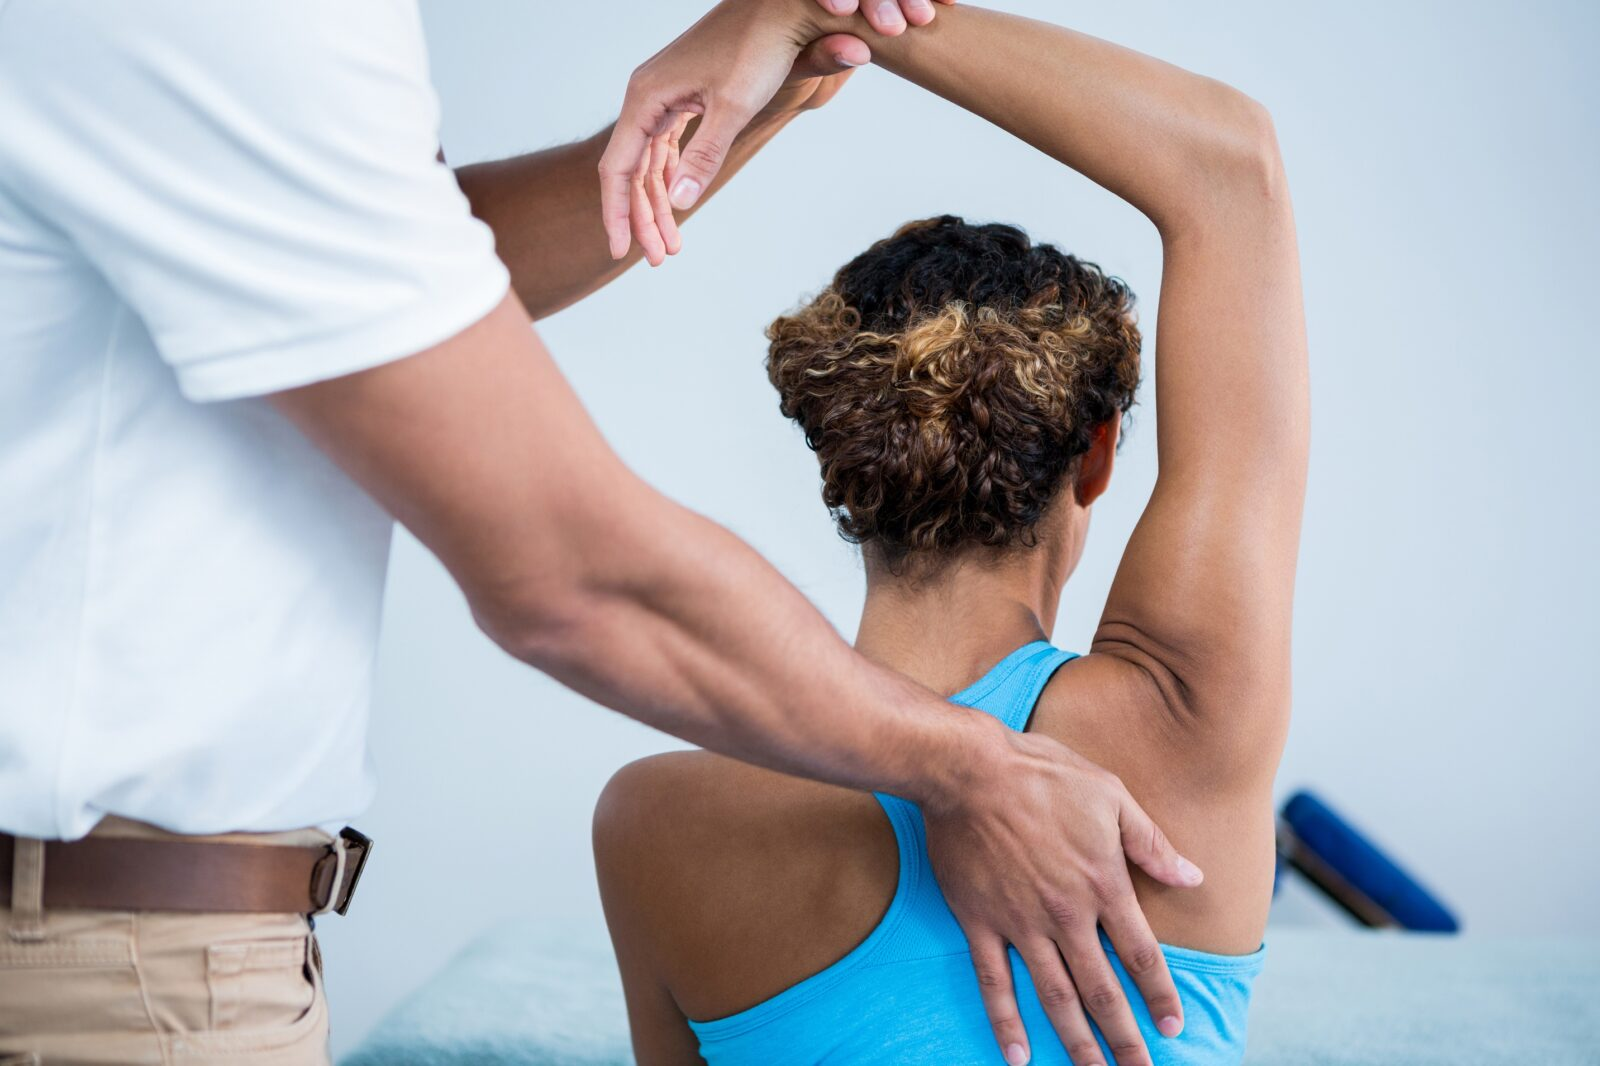 surprise chiropractic care clinic